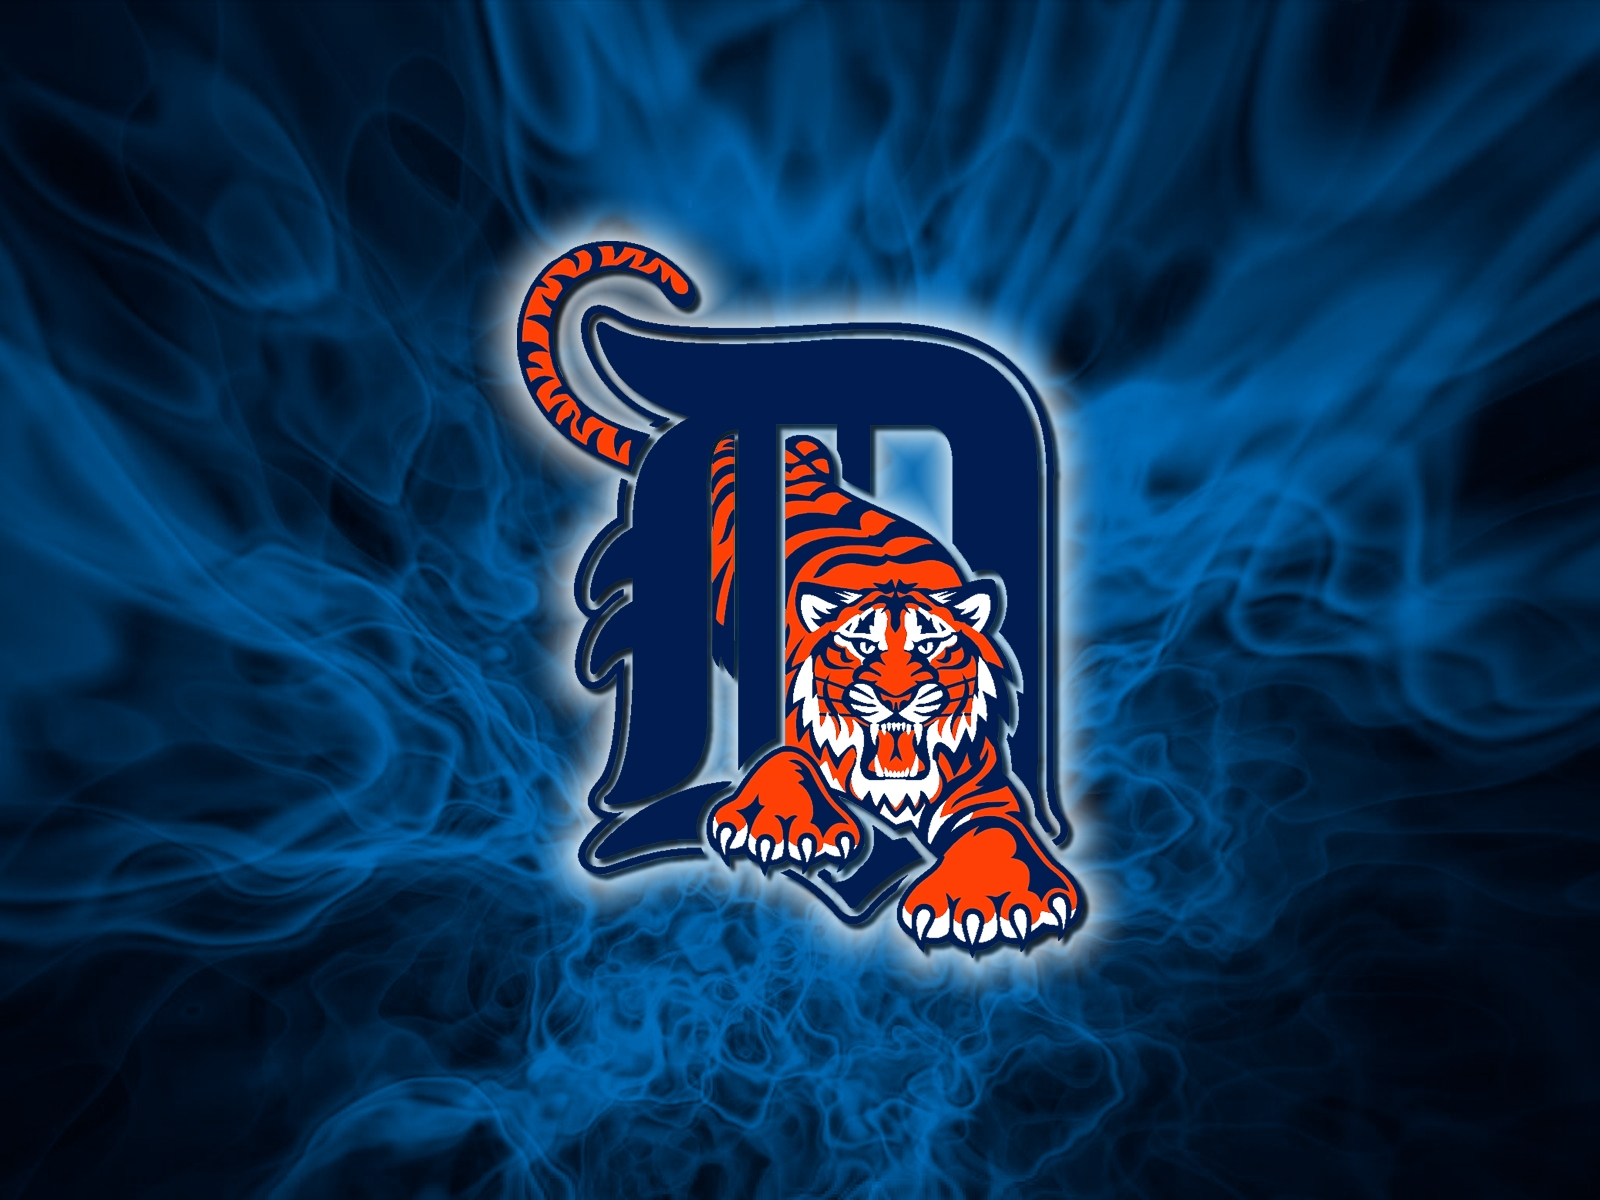 1600x1200 - Detroit Tigers Wallpapers 7